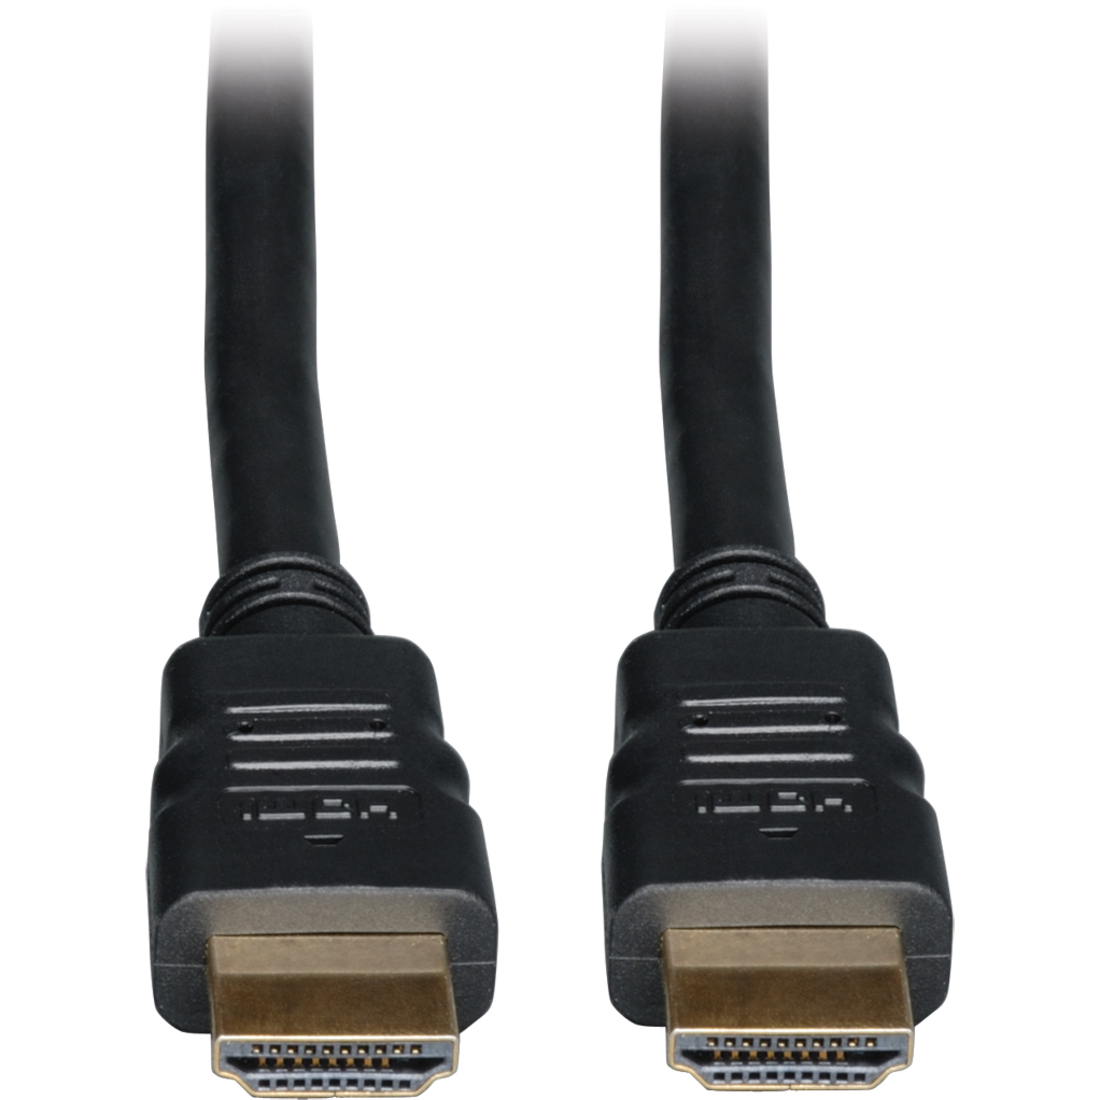 Tripp Lite 20ft High Speed HDMI Cable with Ethernet Digital Video / Audio  4Kx 2K M/M 20' - HDMI for Audio/Video Device, TV, Monitor, iPad - 20 ft - 1